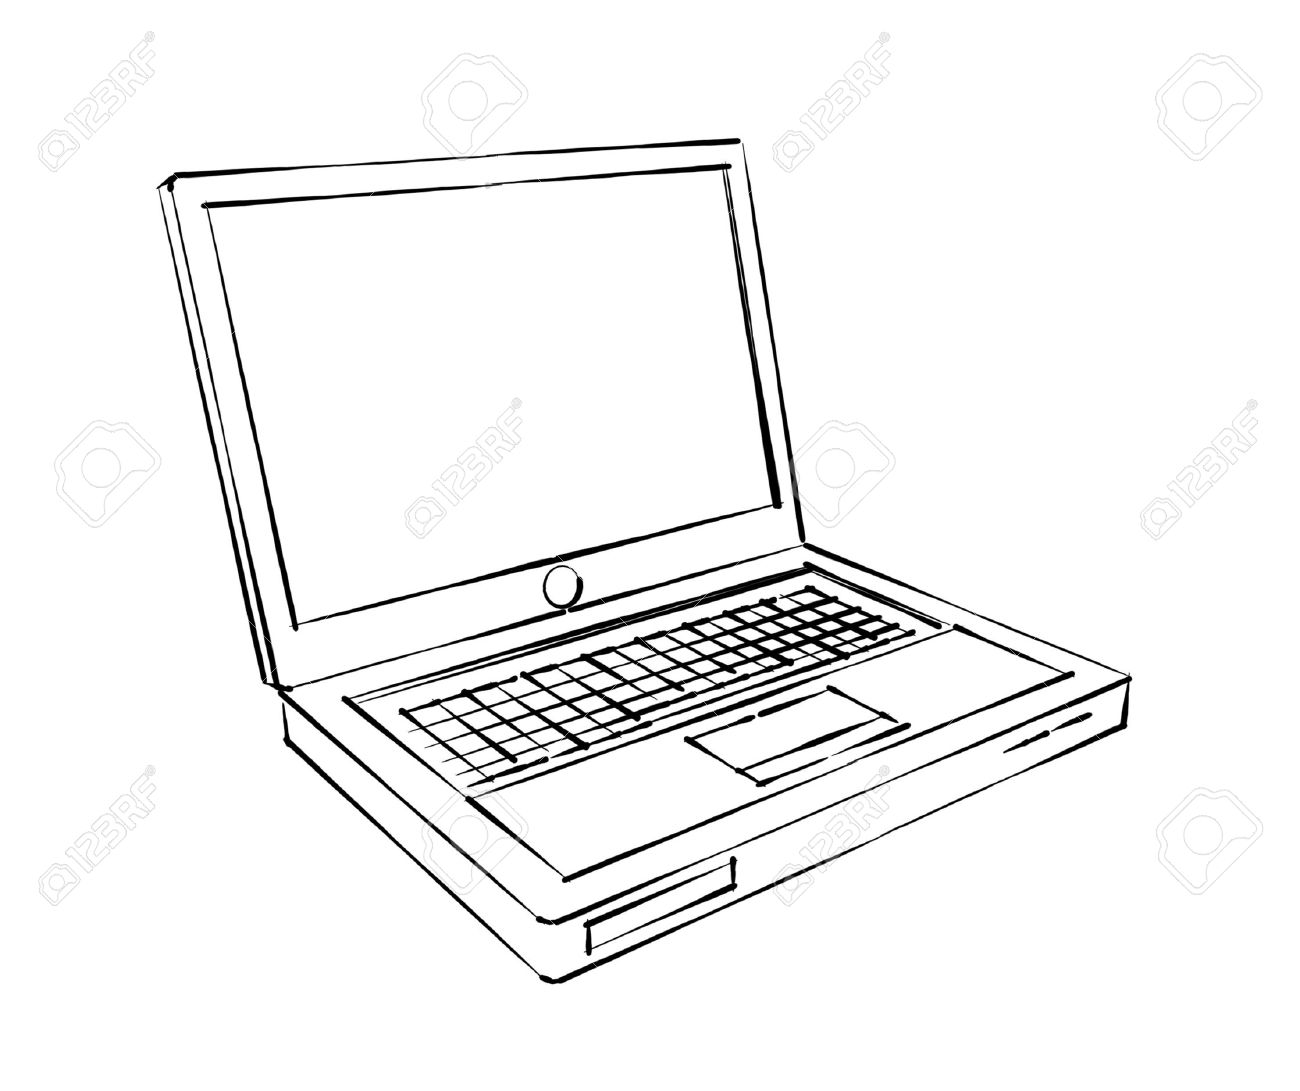 Laptop Sketch Stock Photo, Picture And Royalty Free Image. Image ...